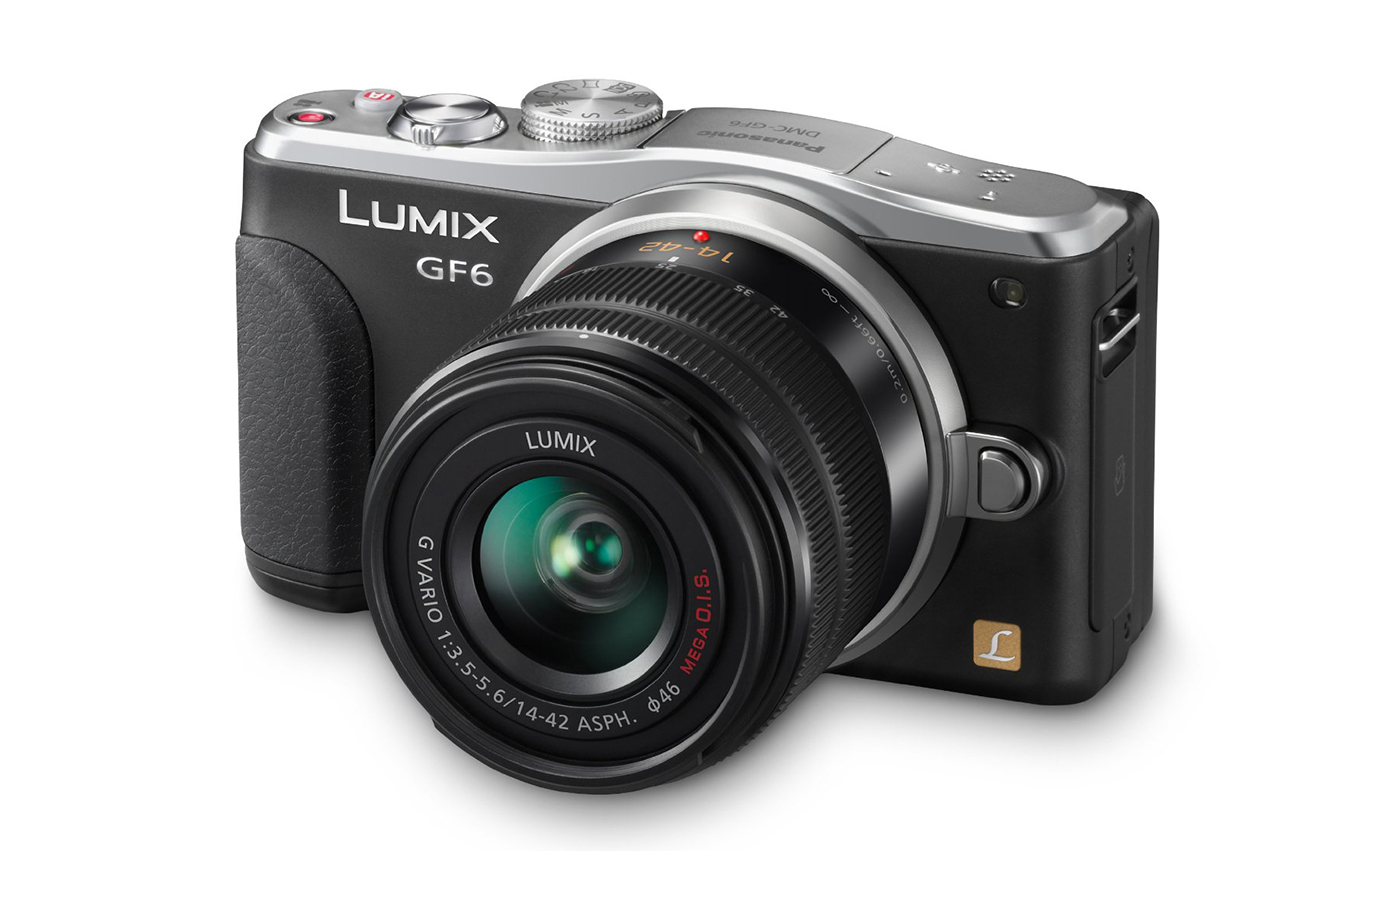 Getting Started with CSC: 6 Mirrorless Cameras Under $600, Panasonic GF 6 Cameraplex